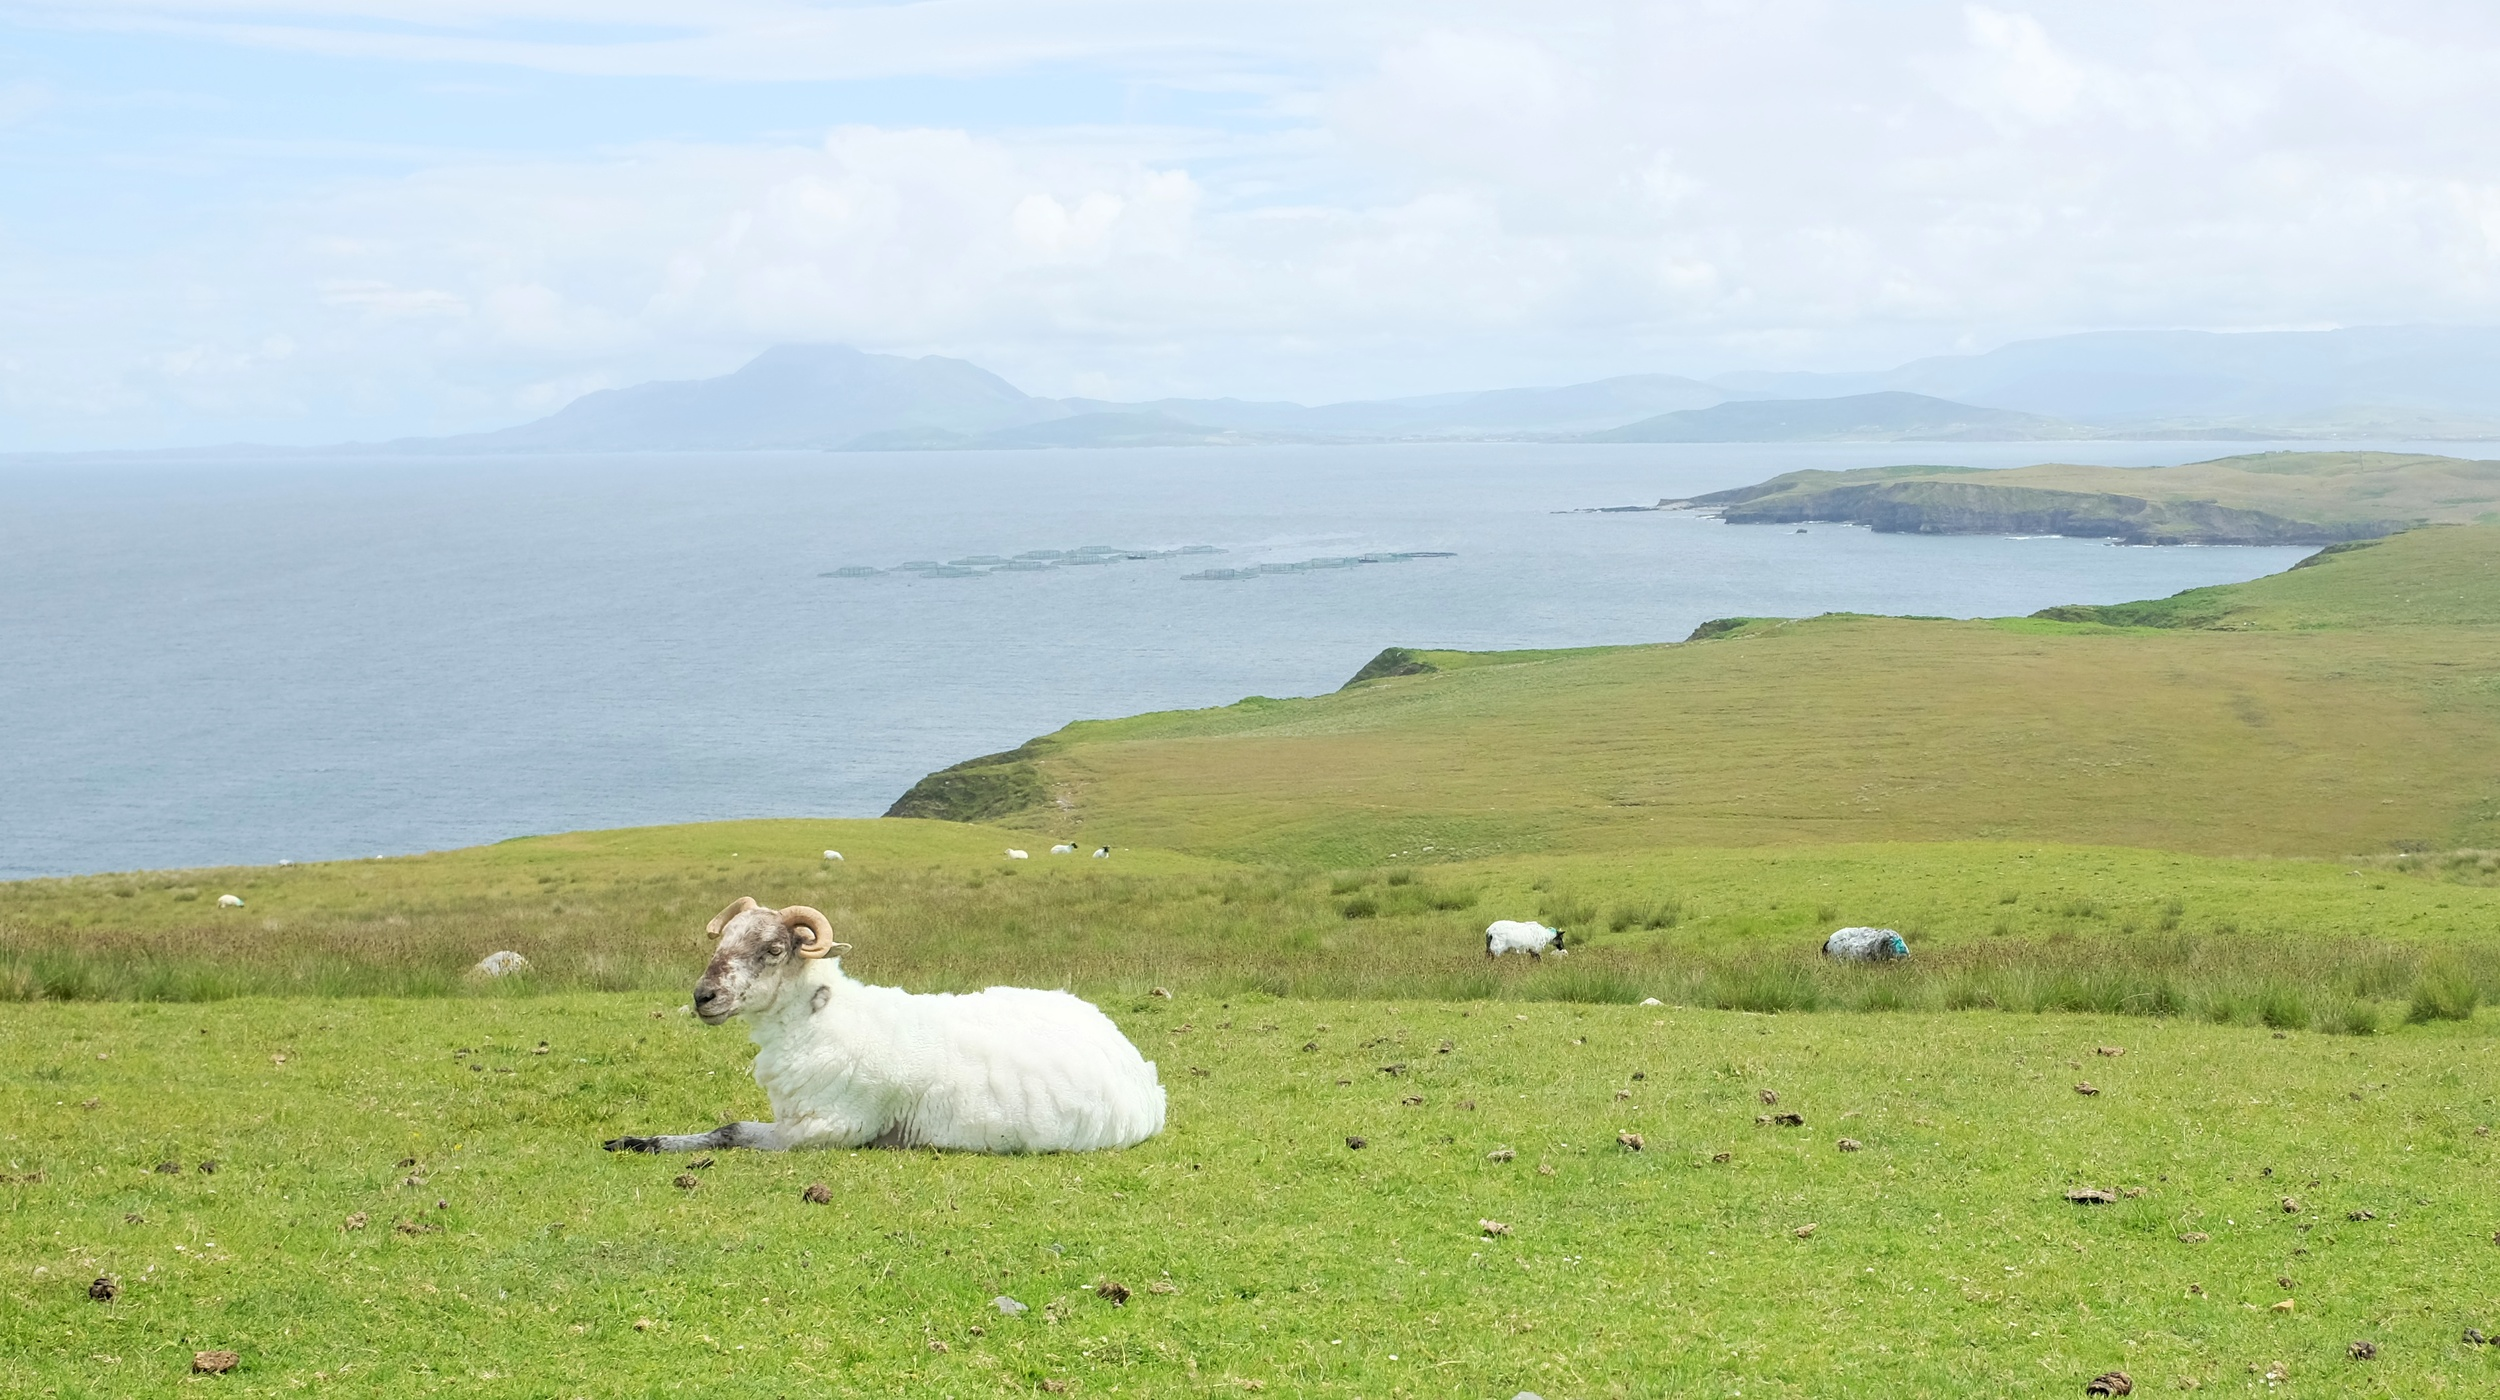 A sheep posed for our picture without being disturbed